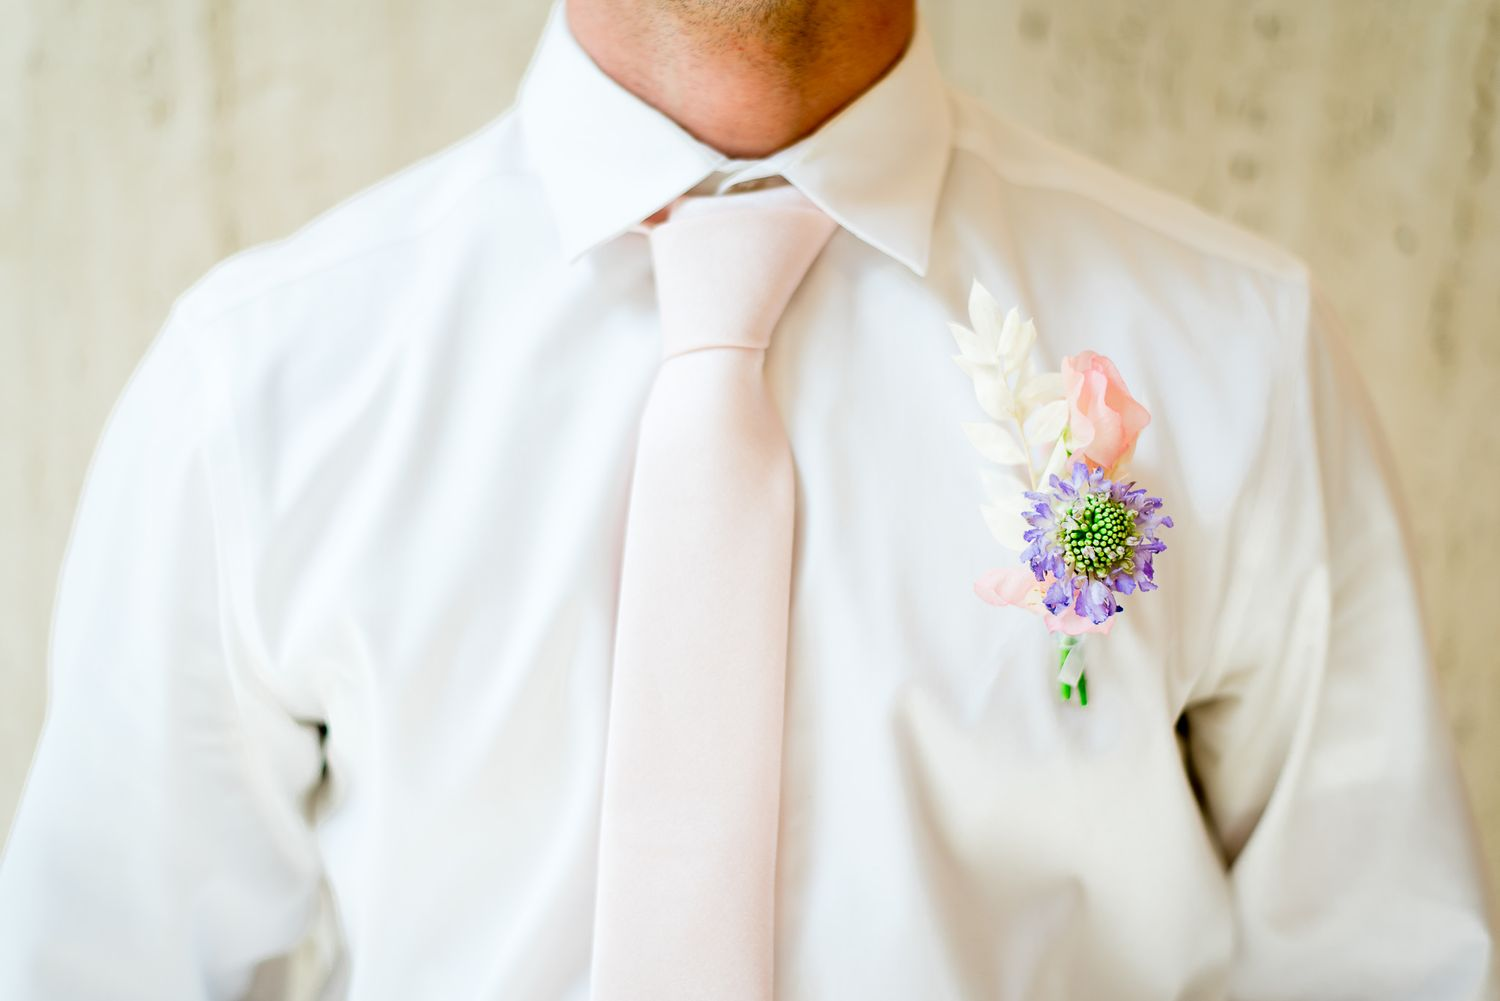 groom wearing white shirt, pink tie, pink and purple boutonniere in front of marble wall at The Center Cincinnati spring